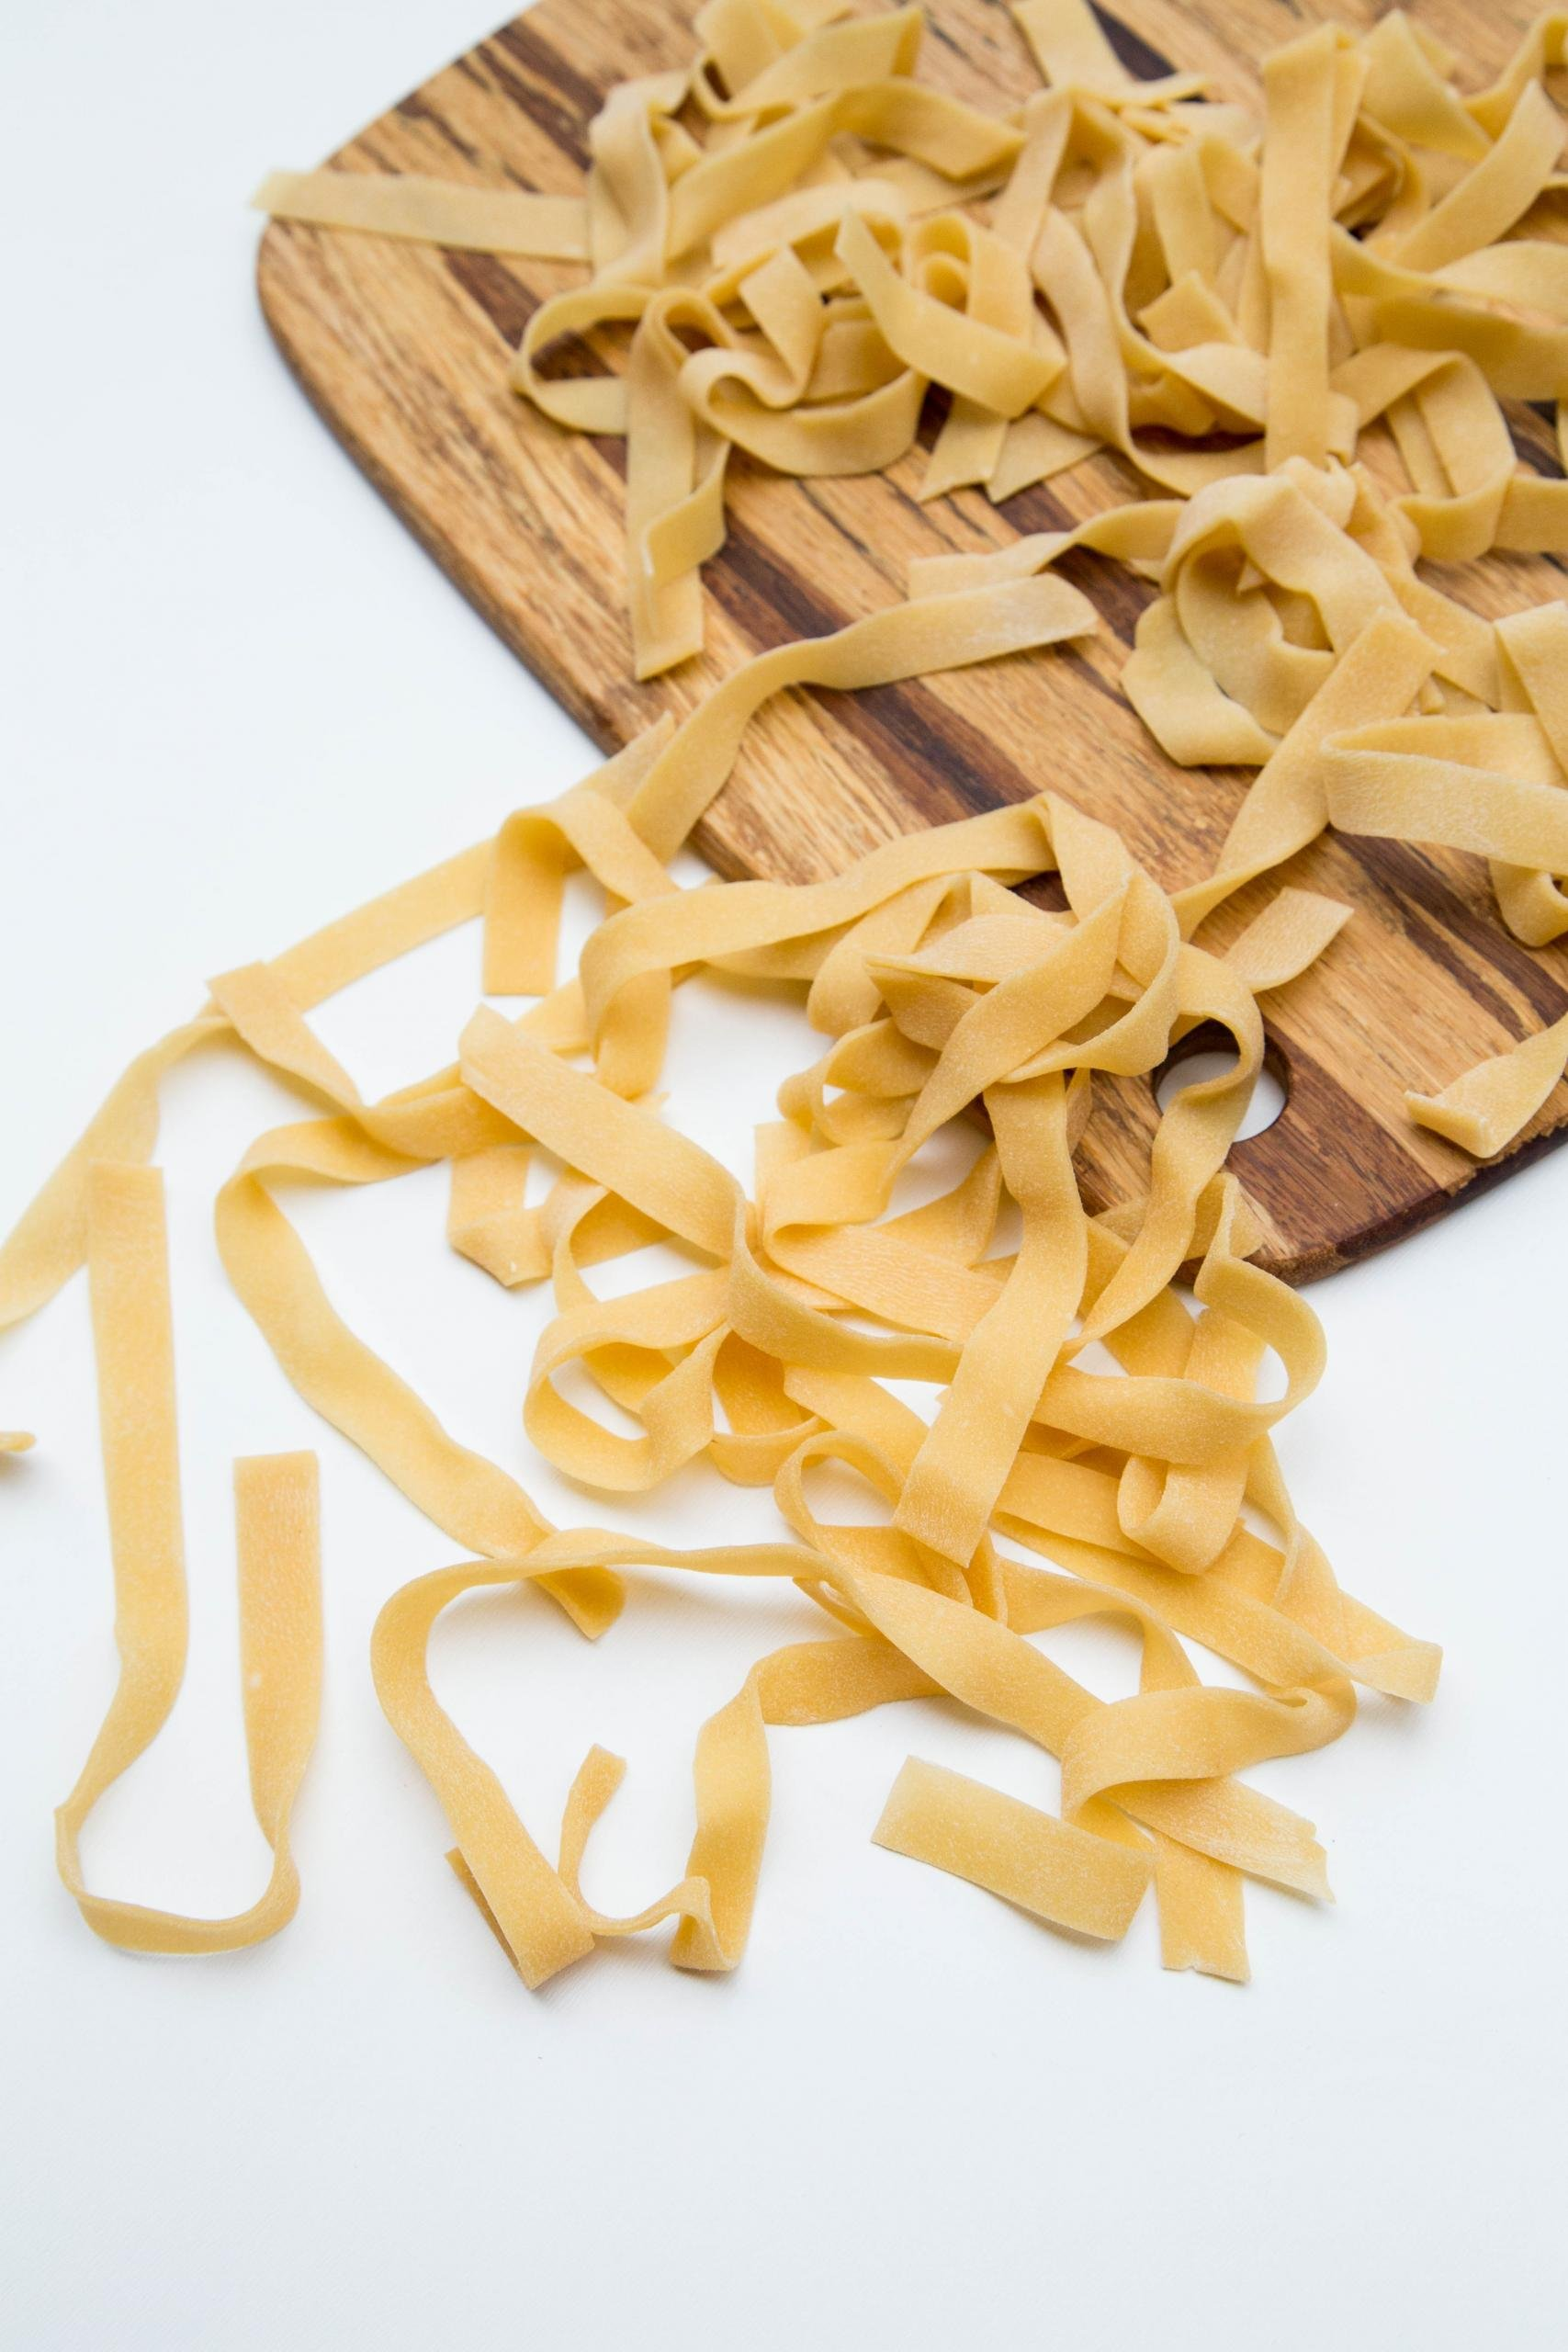 Homemade Pasta on cutting board and on the table